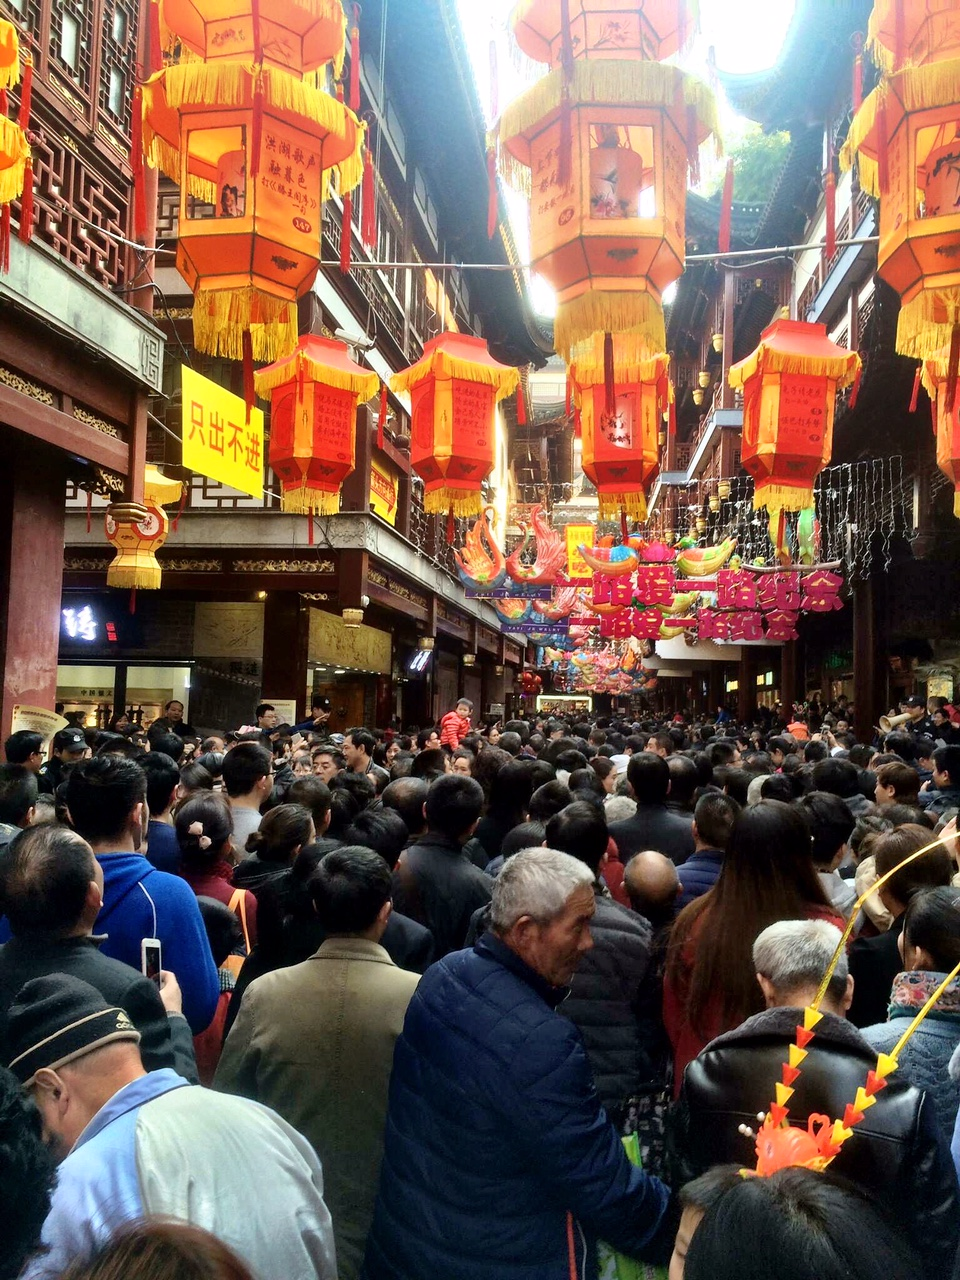 Crazy crowded Chinese New Year celebration downtown